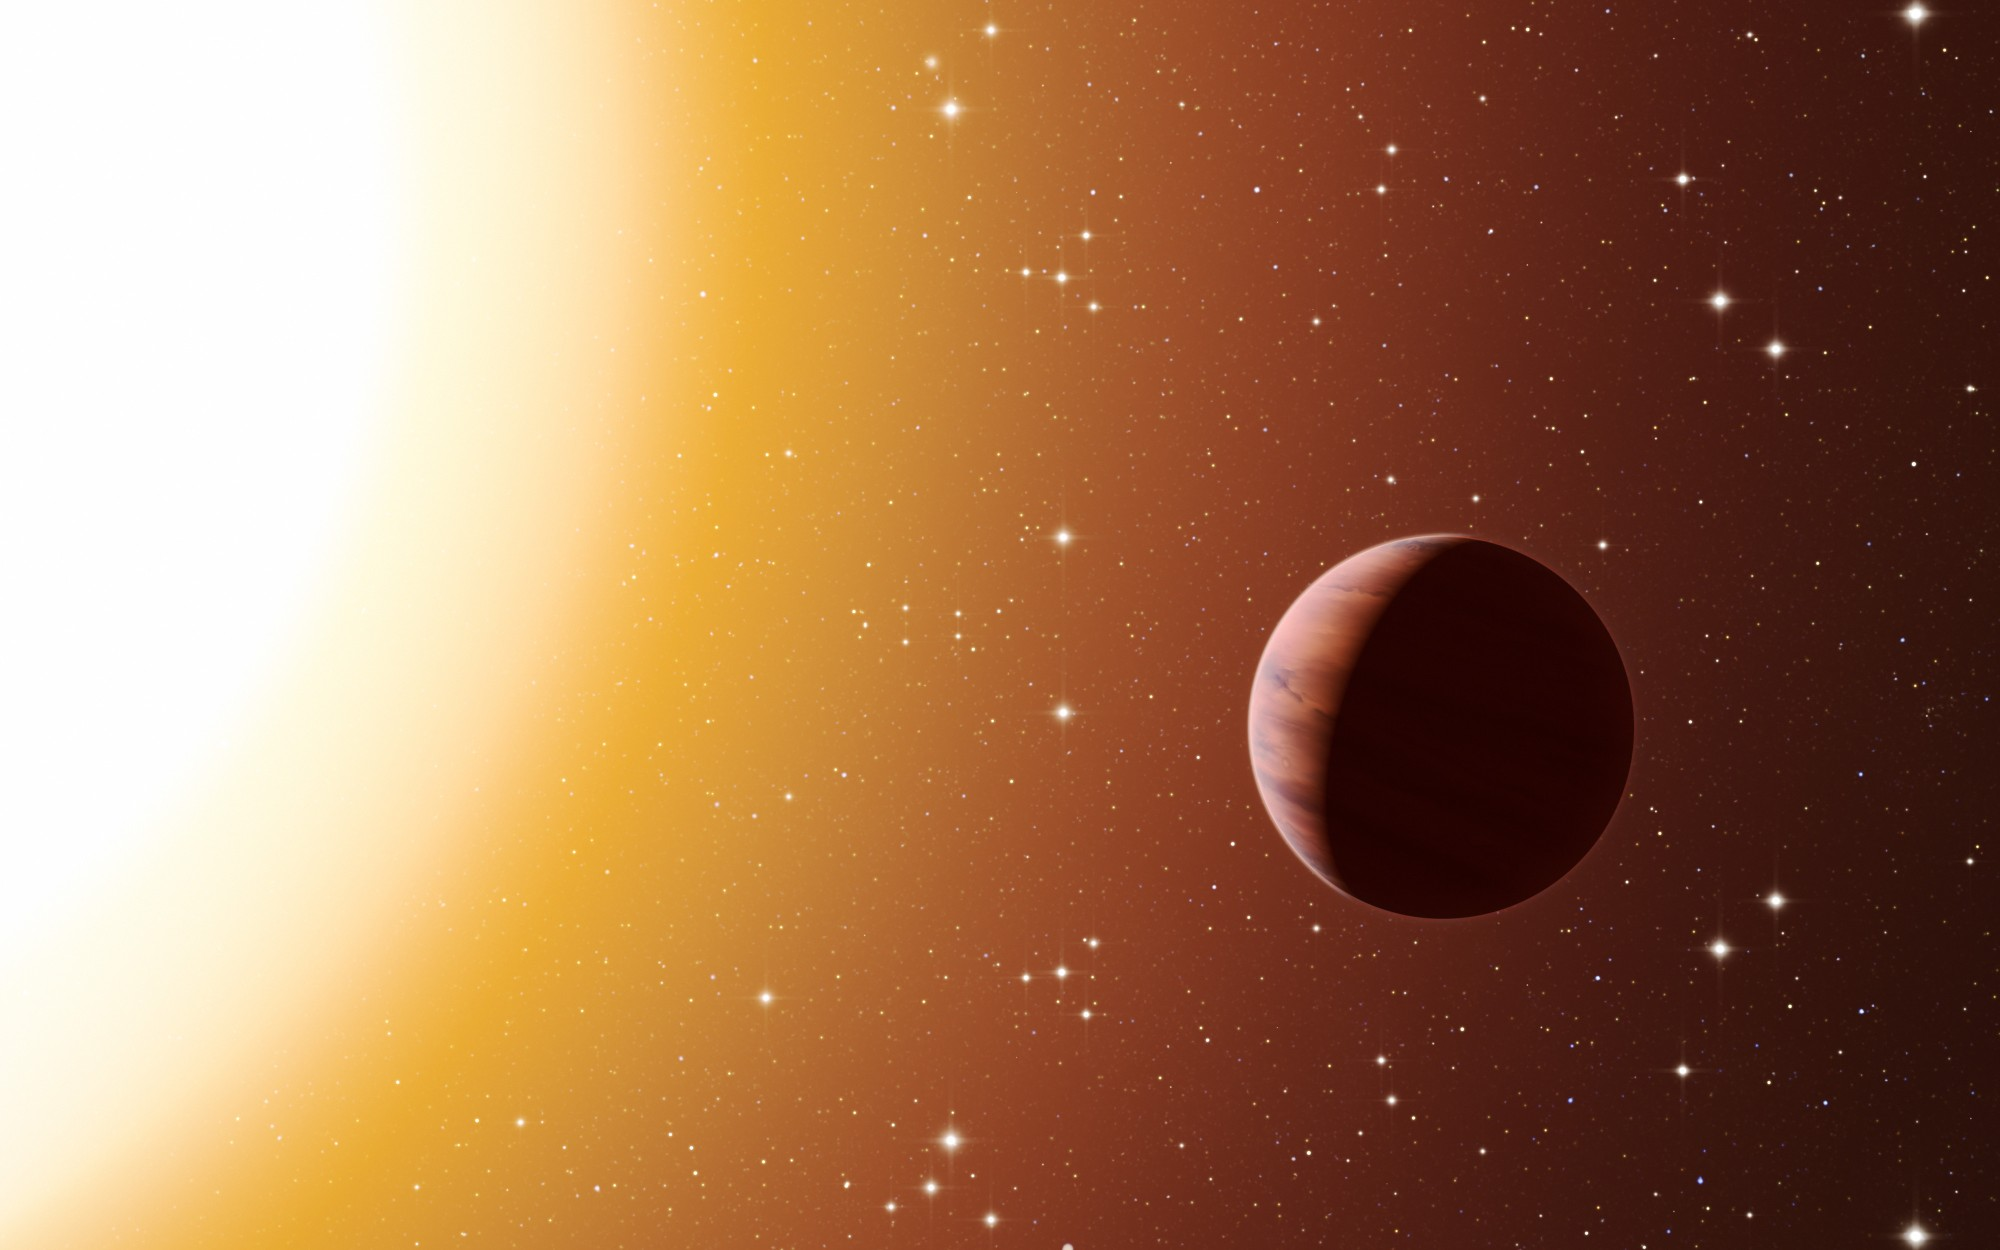 This artist's impression shows a hot Jupiter planet orbiting close to one of the stars in the rich old star cluster Messier 67, in the constellation of Cancer (The Crab). Astronomers have found far more planets like this in the cluster than expected. This surprise result was obtained using a number of telescopes and instruments, among them the HARPS spectrograph at ESO's La Silla Observatory in Chile. The denser environment in a cluster will cause more frequent interactions between planets and nearby stars, which may explain the excess of hot Jupiters.